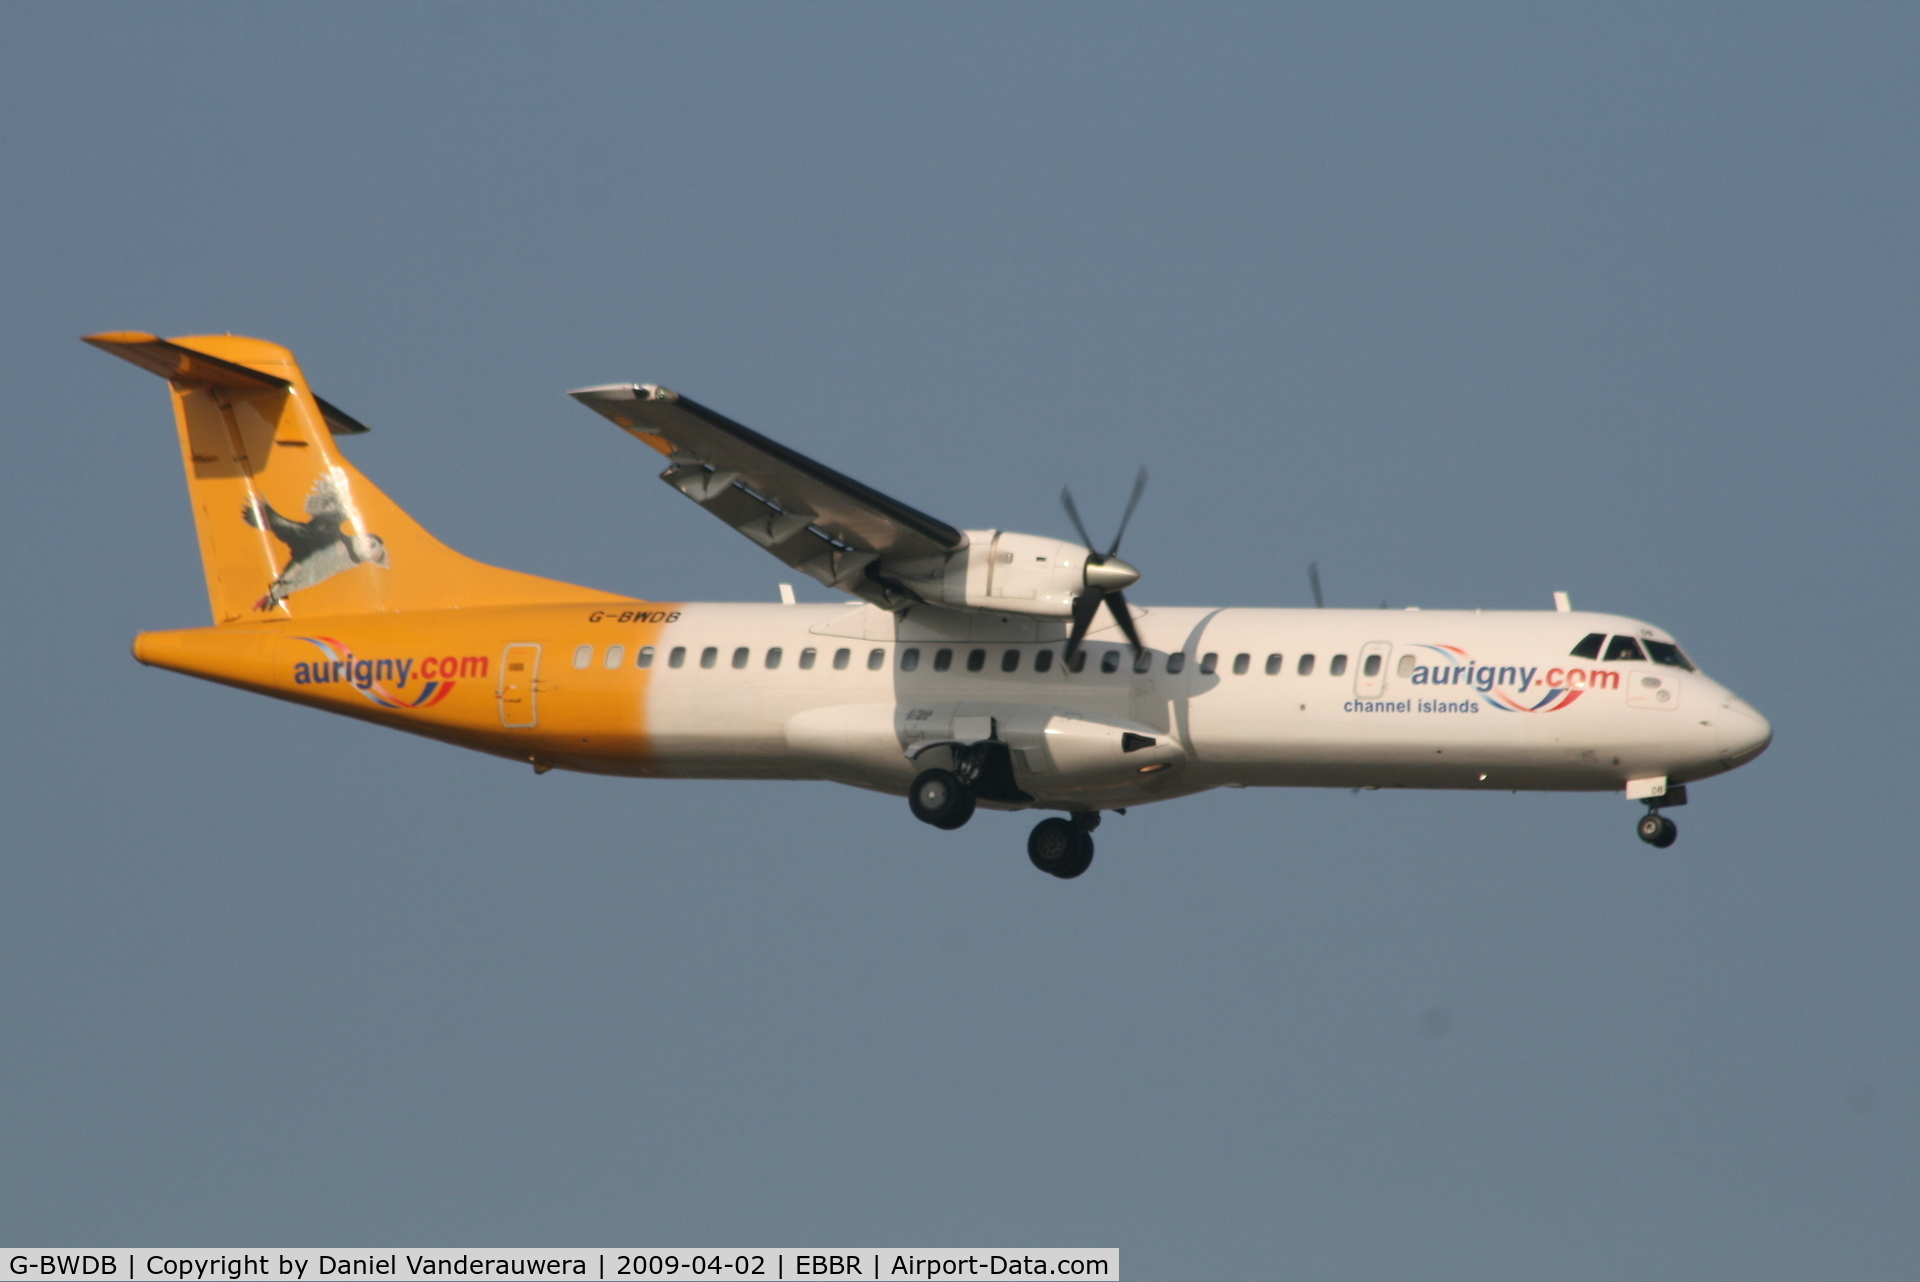 G-BWDB, 1995 ATR 72-202 C/N 449, Flight BE7181 is descending to RWY 02